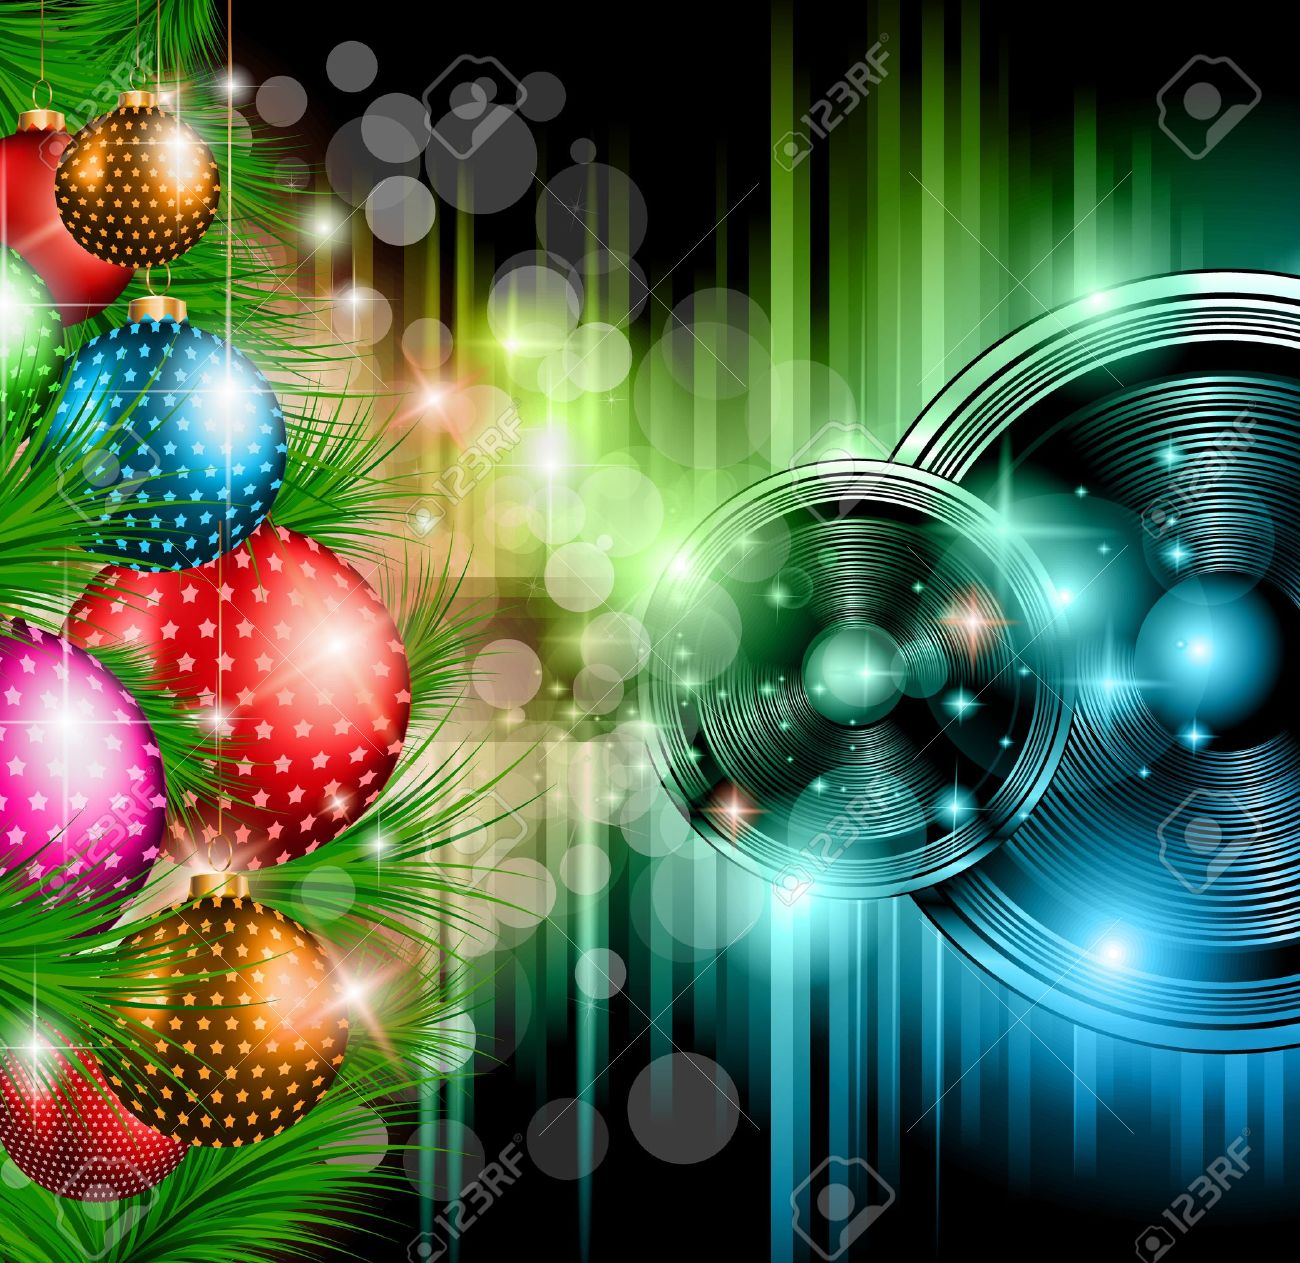 christmas club party background ideal for holiday discotheque christmas club party background ideal for holiday discotheque event or party invitation poster stock